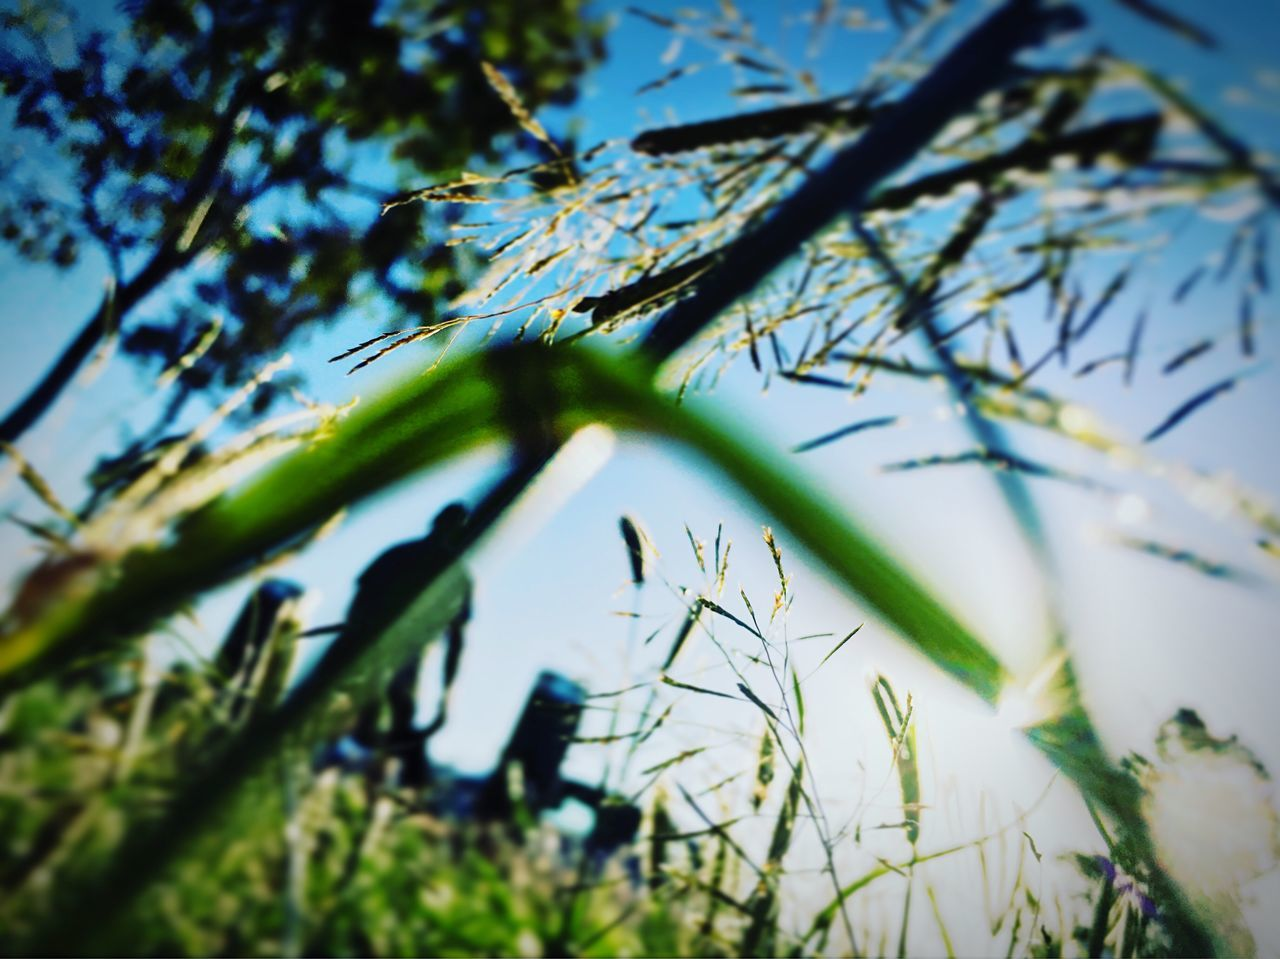 Long Goodbye Letting Go❤ Surrender... Growth Low Angle View Tree Branch Nature Day Selective Focus No People Beauty In Nature Outdoors Green Color Plant Flower Leaf Sky Close-up Fragility Freshness (null)SPIRITUAL HEALING Awakening EyeEmNewHere